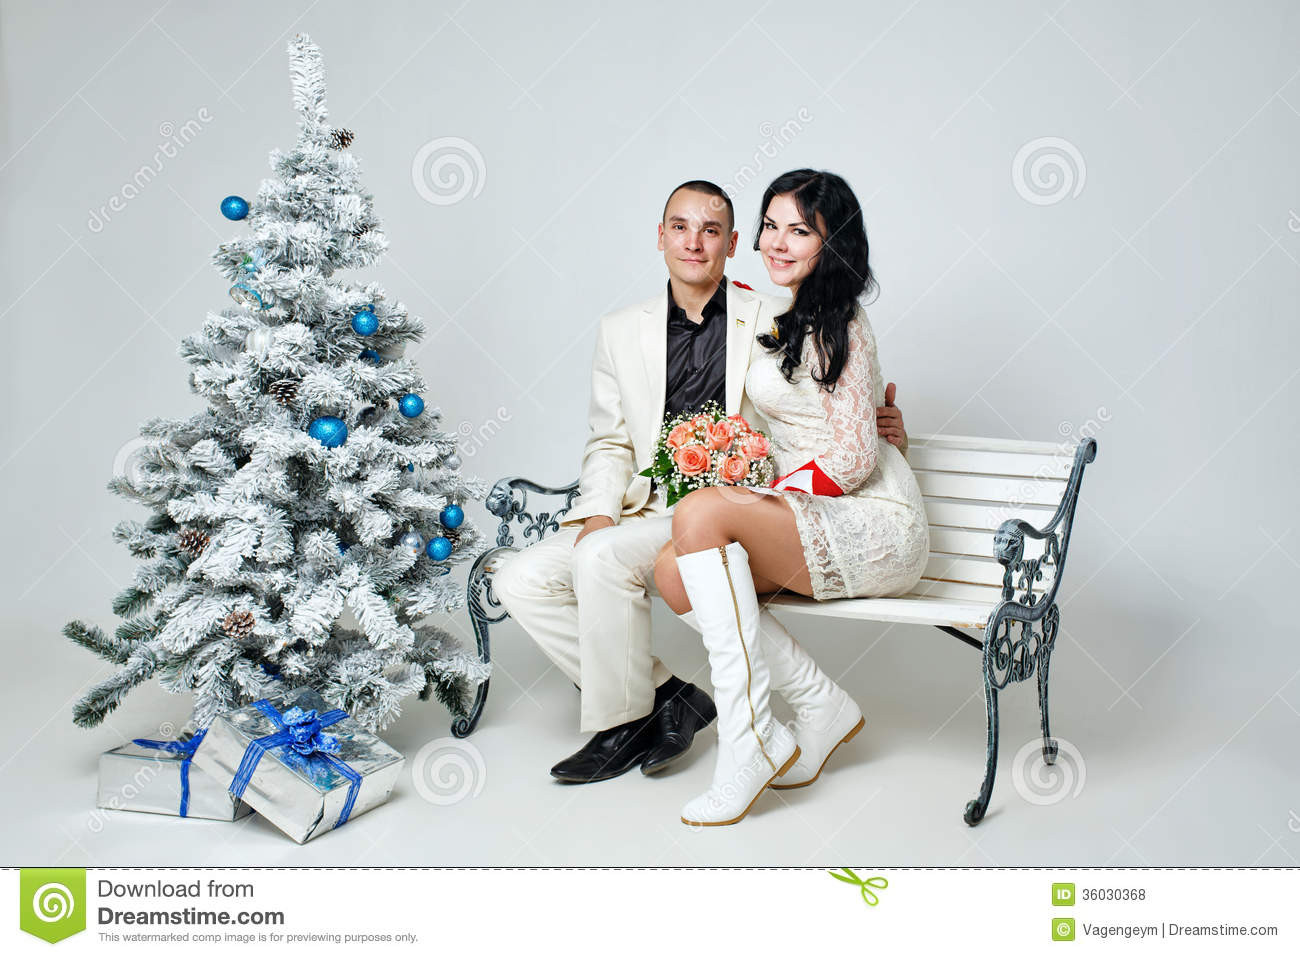 Christmas Gift Ideas For Young Married Couples  Couple And Christmas Royalty Free Stock s Image